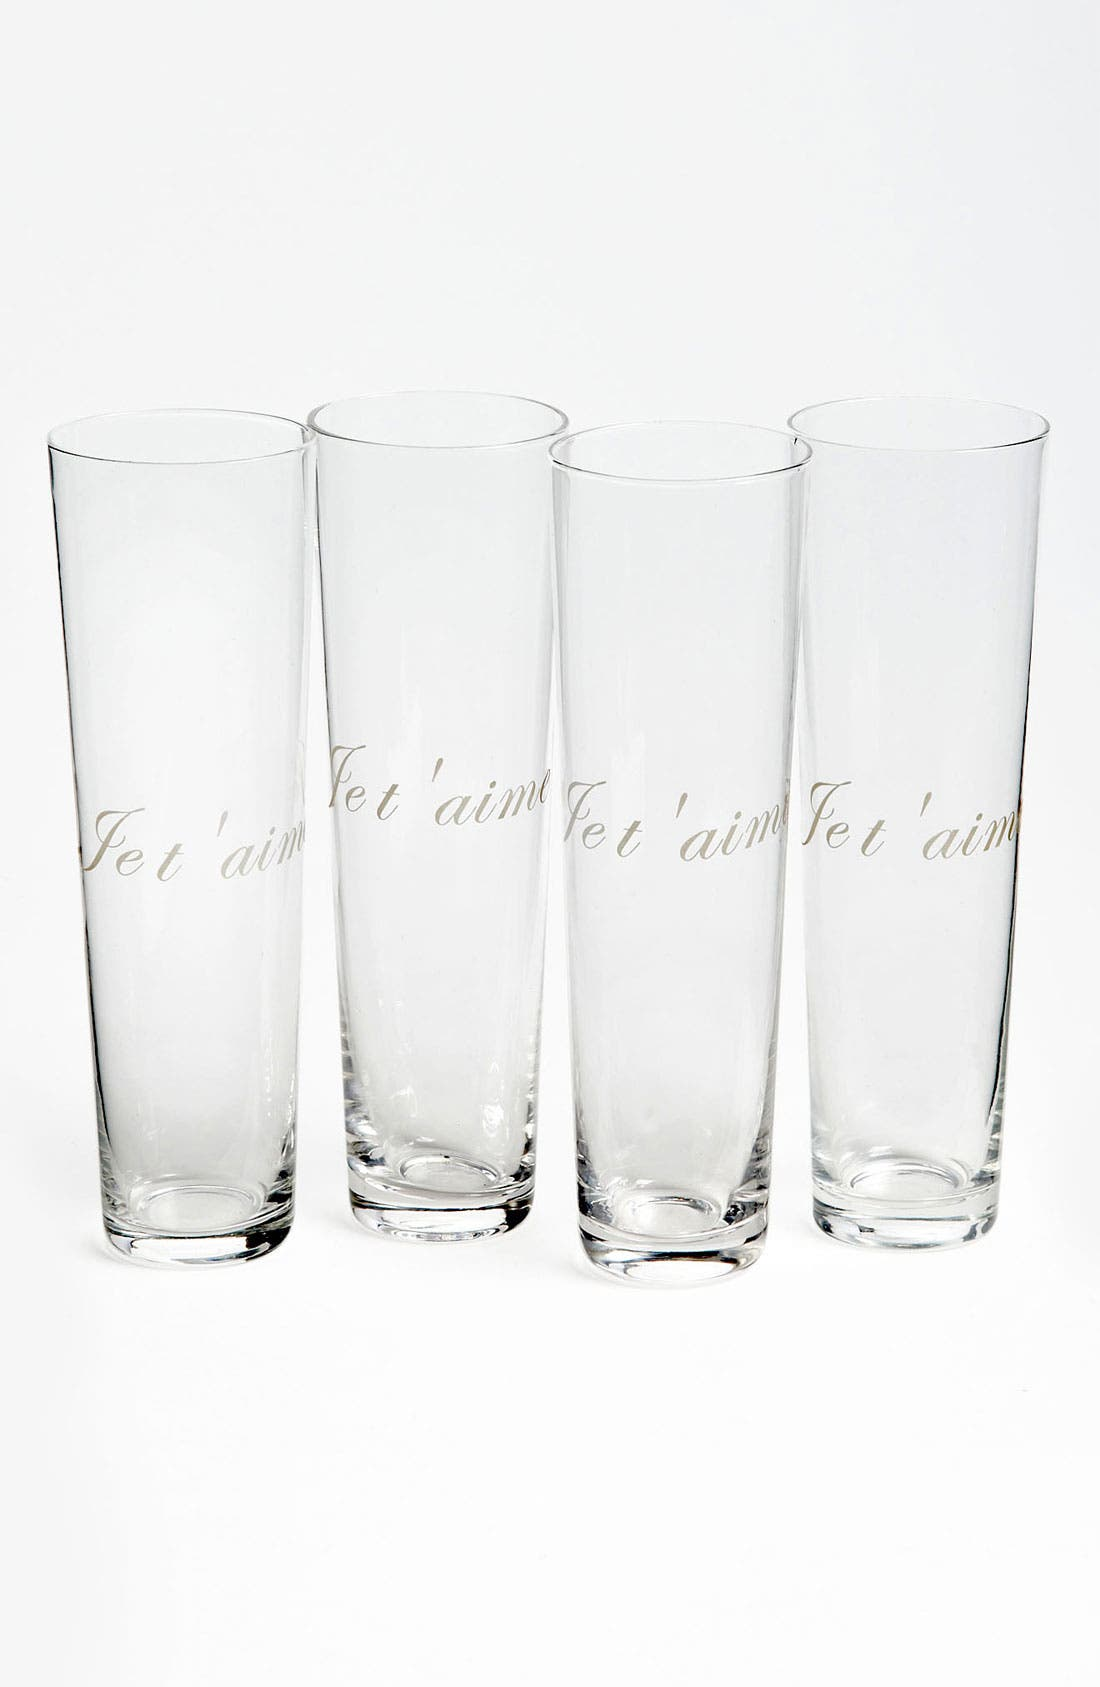 Main Image - 'Je t'aime' Etched Champagne Flutes (Set of 4)